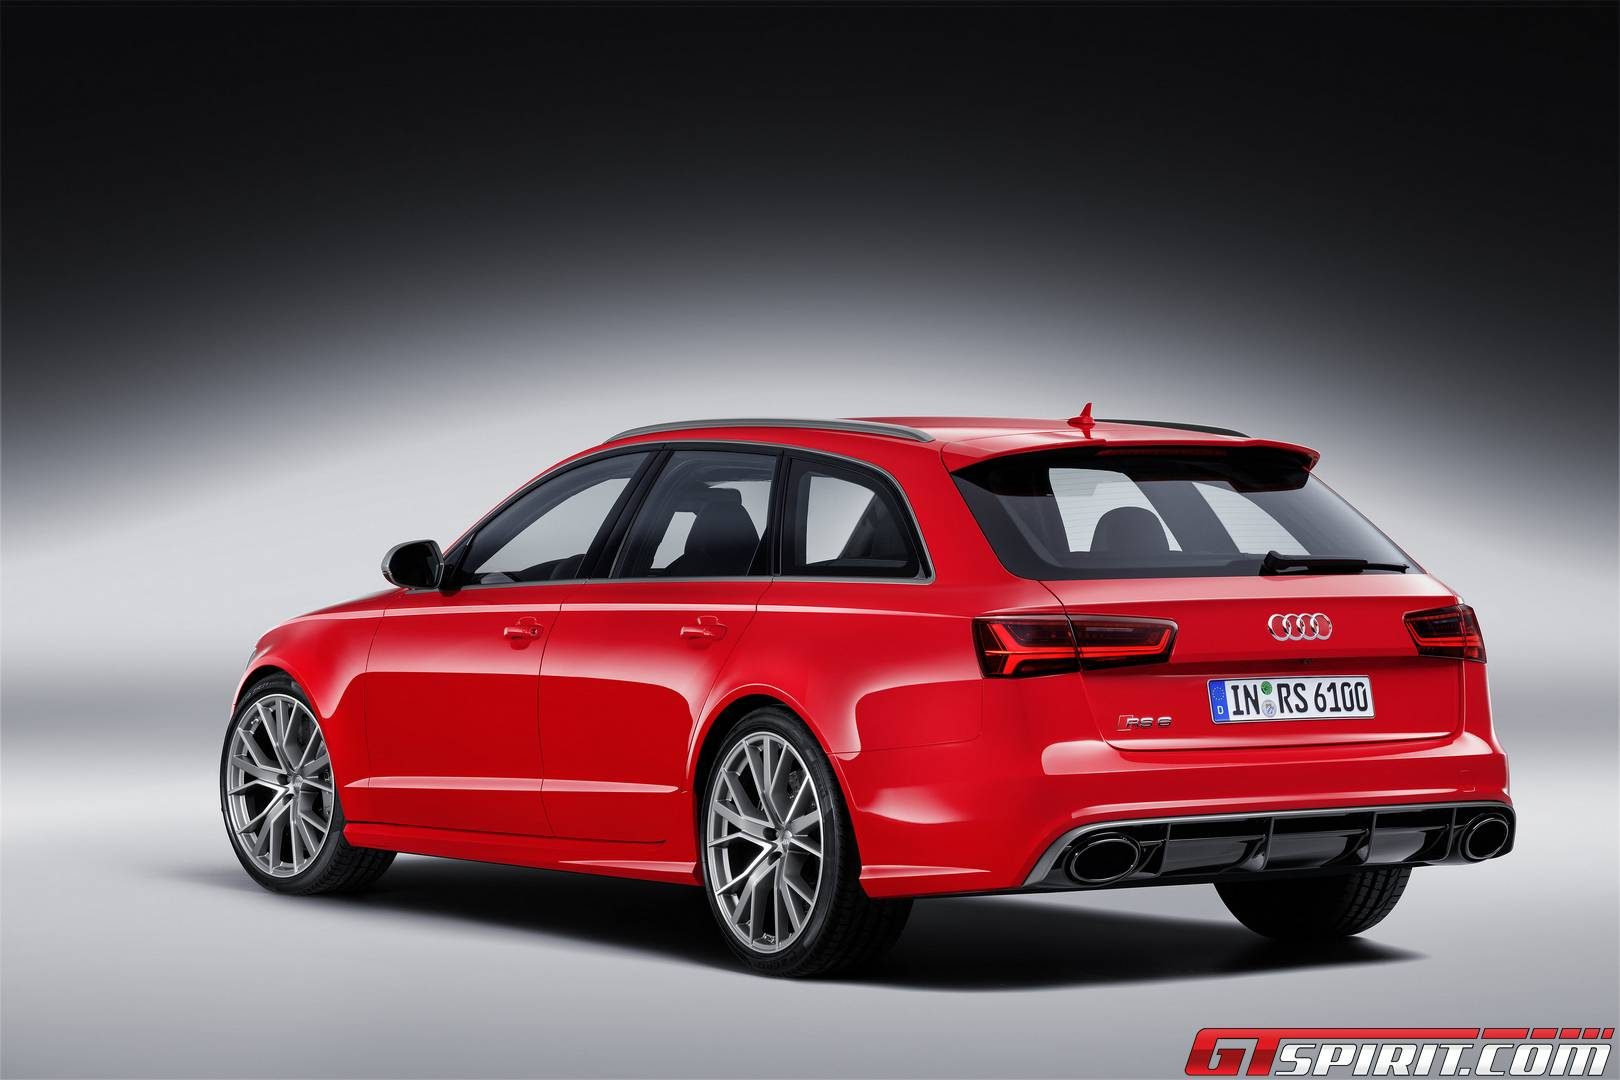 2017 audi rs6 performance the 1 000 mile review gtspirit. Black Bedroom Furniture Sets. Home Design Ideas